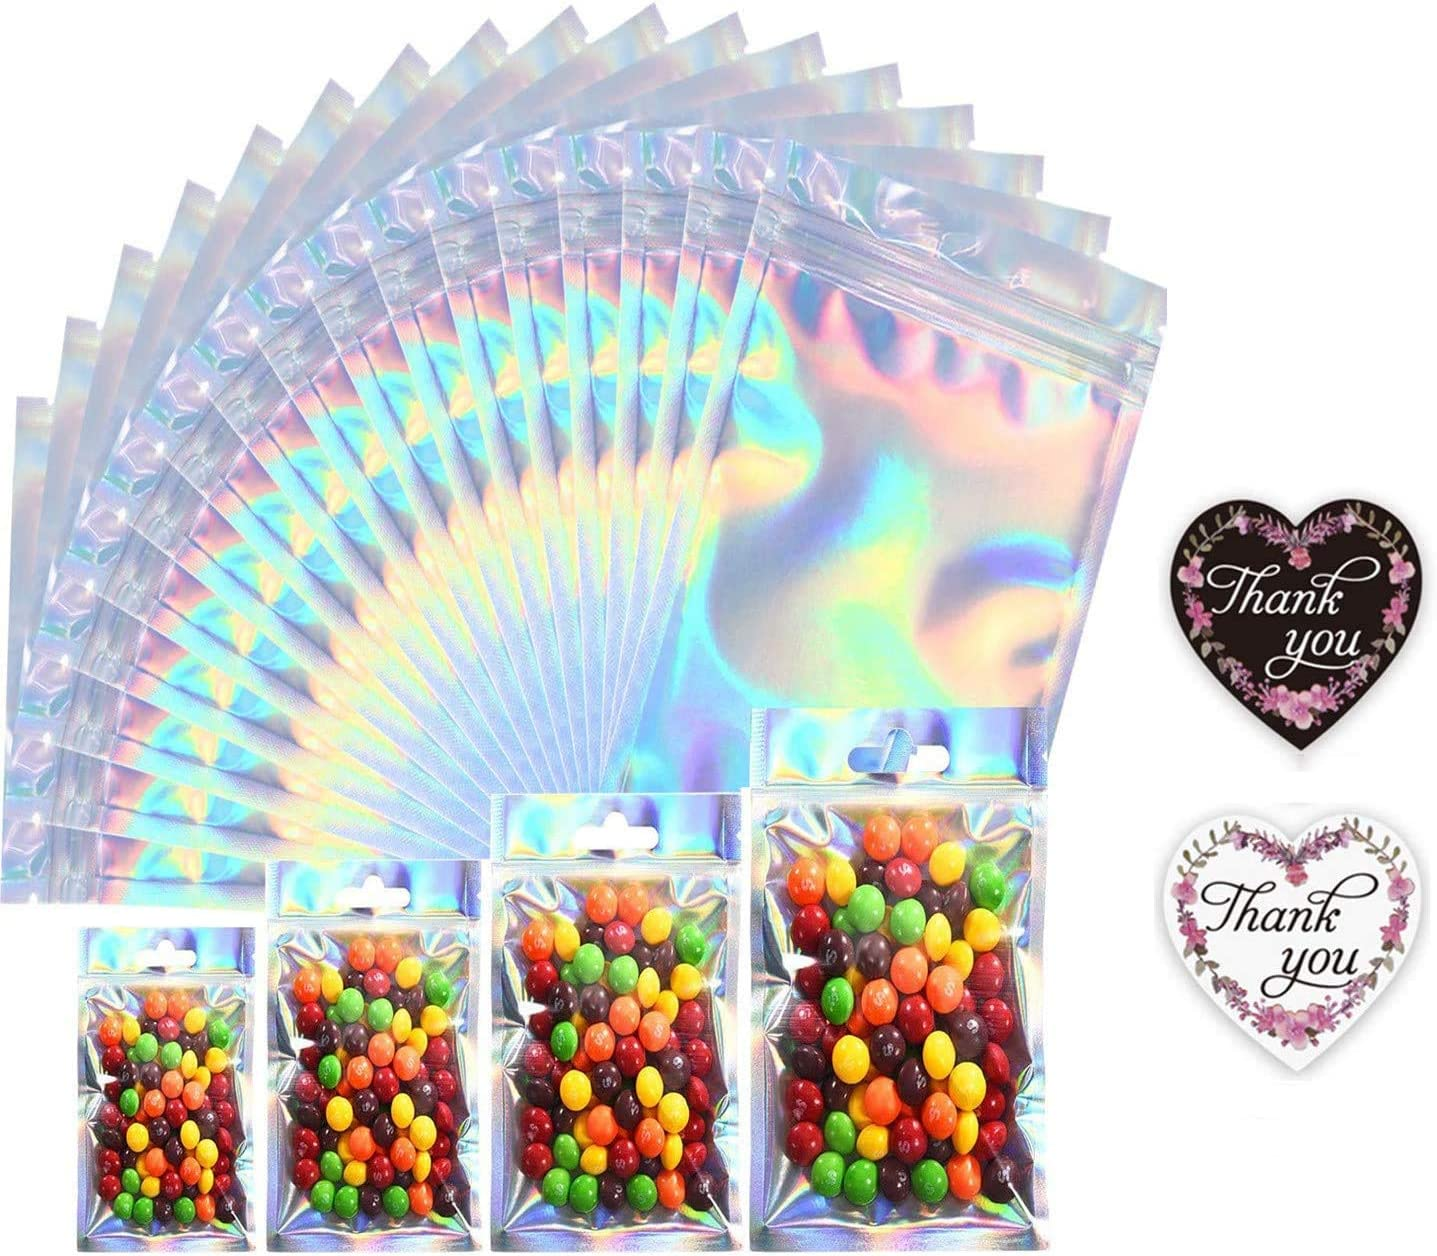 50Pcs Mylar Packaging Bags Holographic Reusable Smell Proof Flat Ziplock Storage Bags for Snack Coffee Beans Candy Nuts Soap Sample Lip Gloss Jewelry with Free 50Pcs Thank You Stickers(4.7x7.8in)